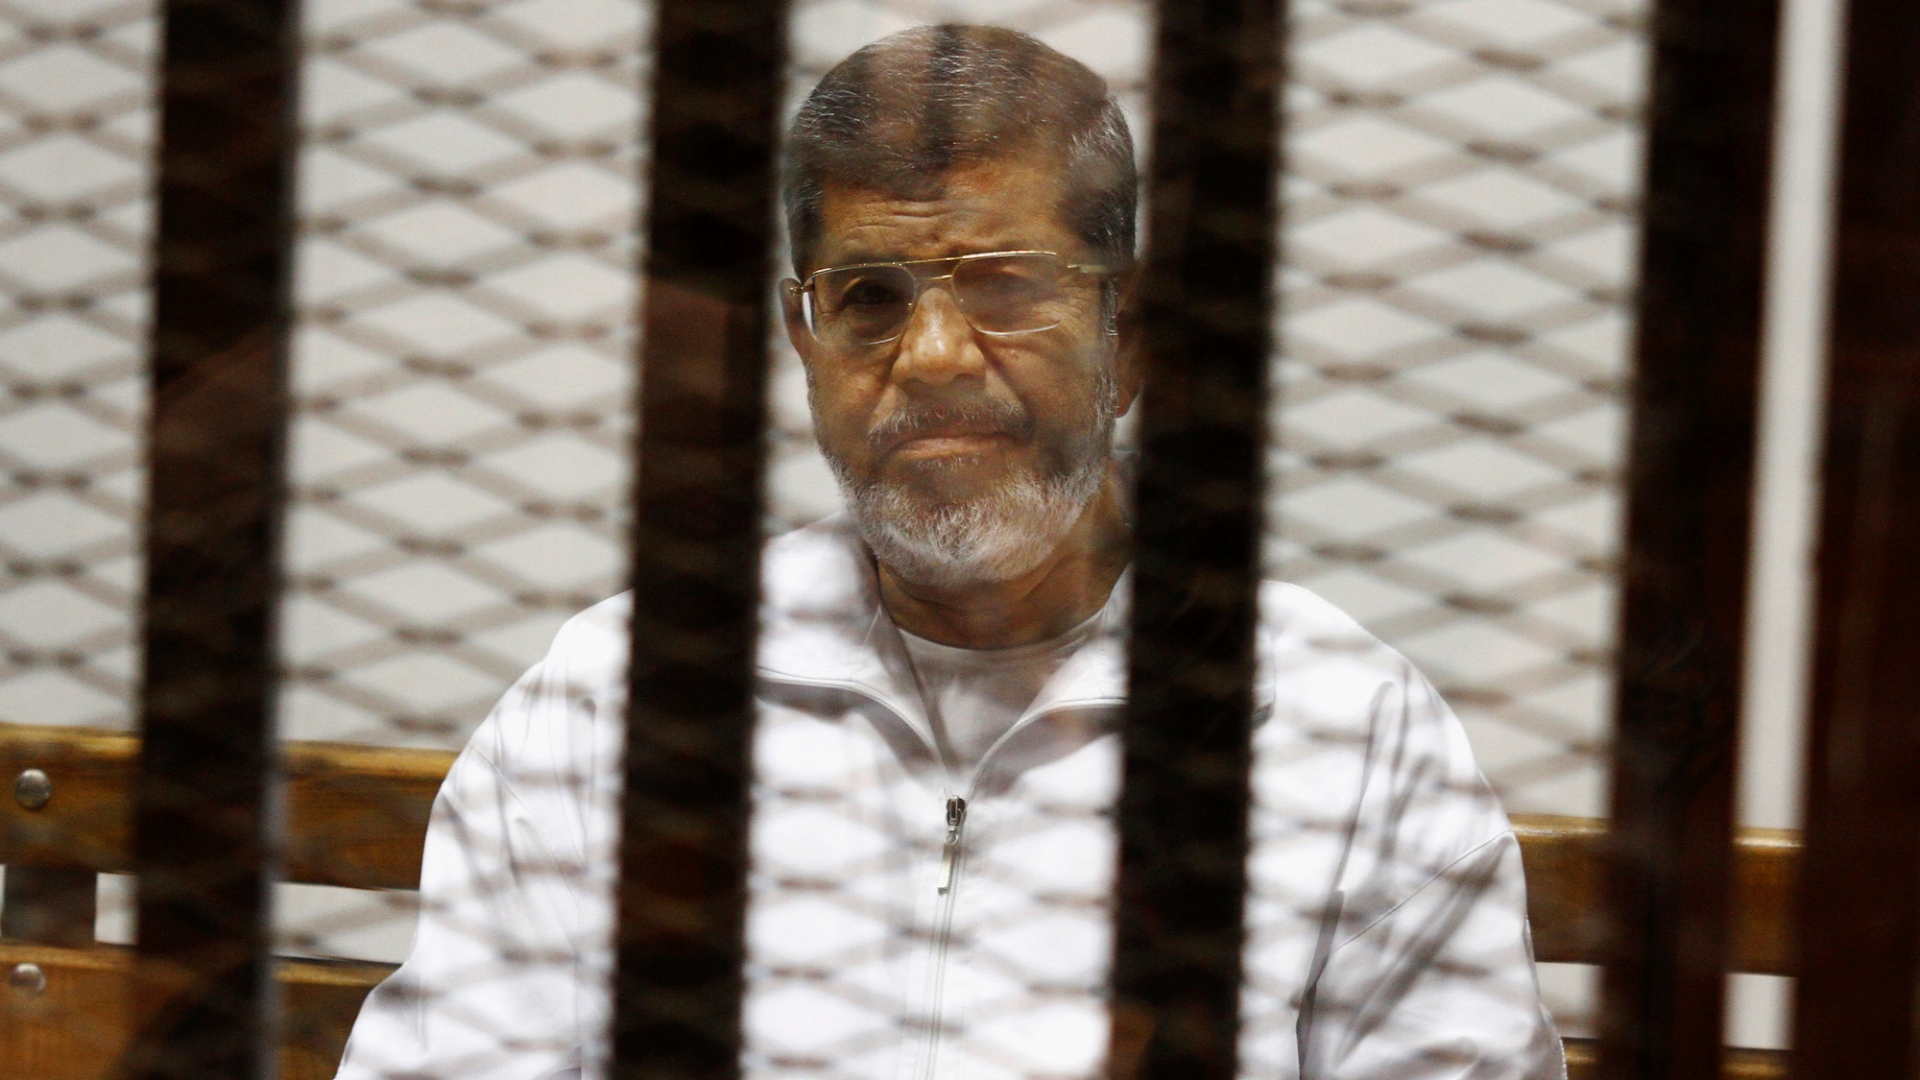 U.N. joins call for independent probe into death of Egypt's ousted president Morsi